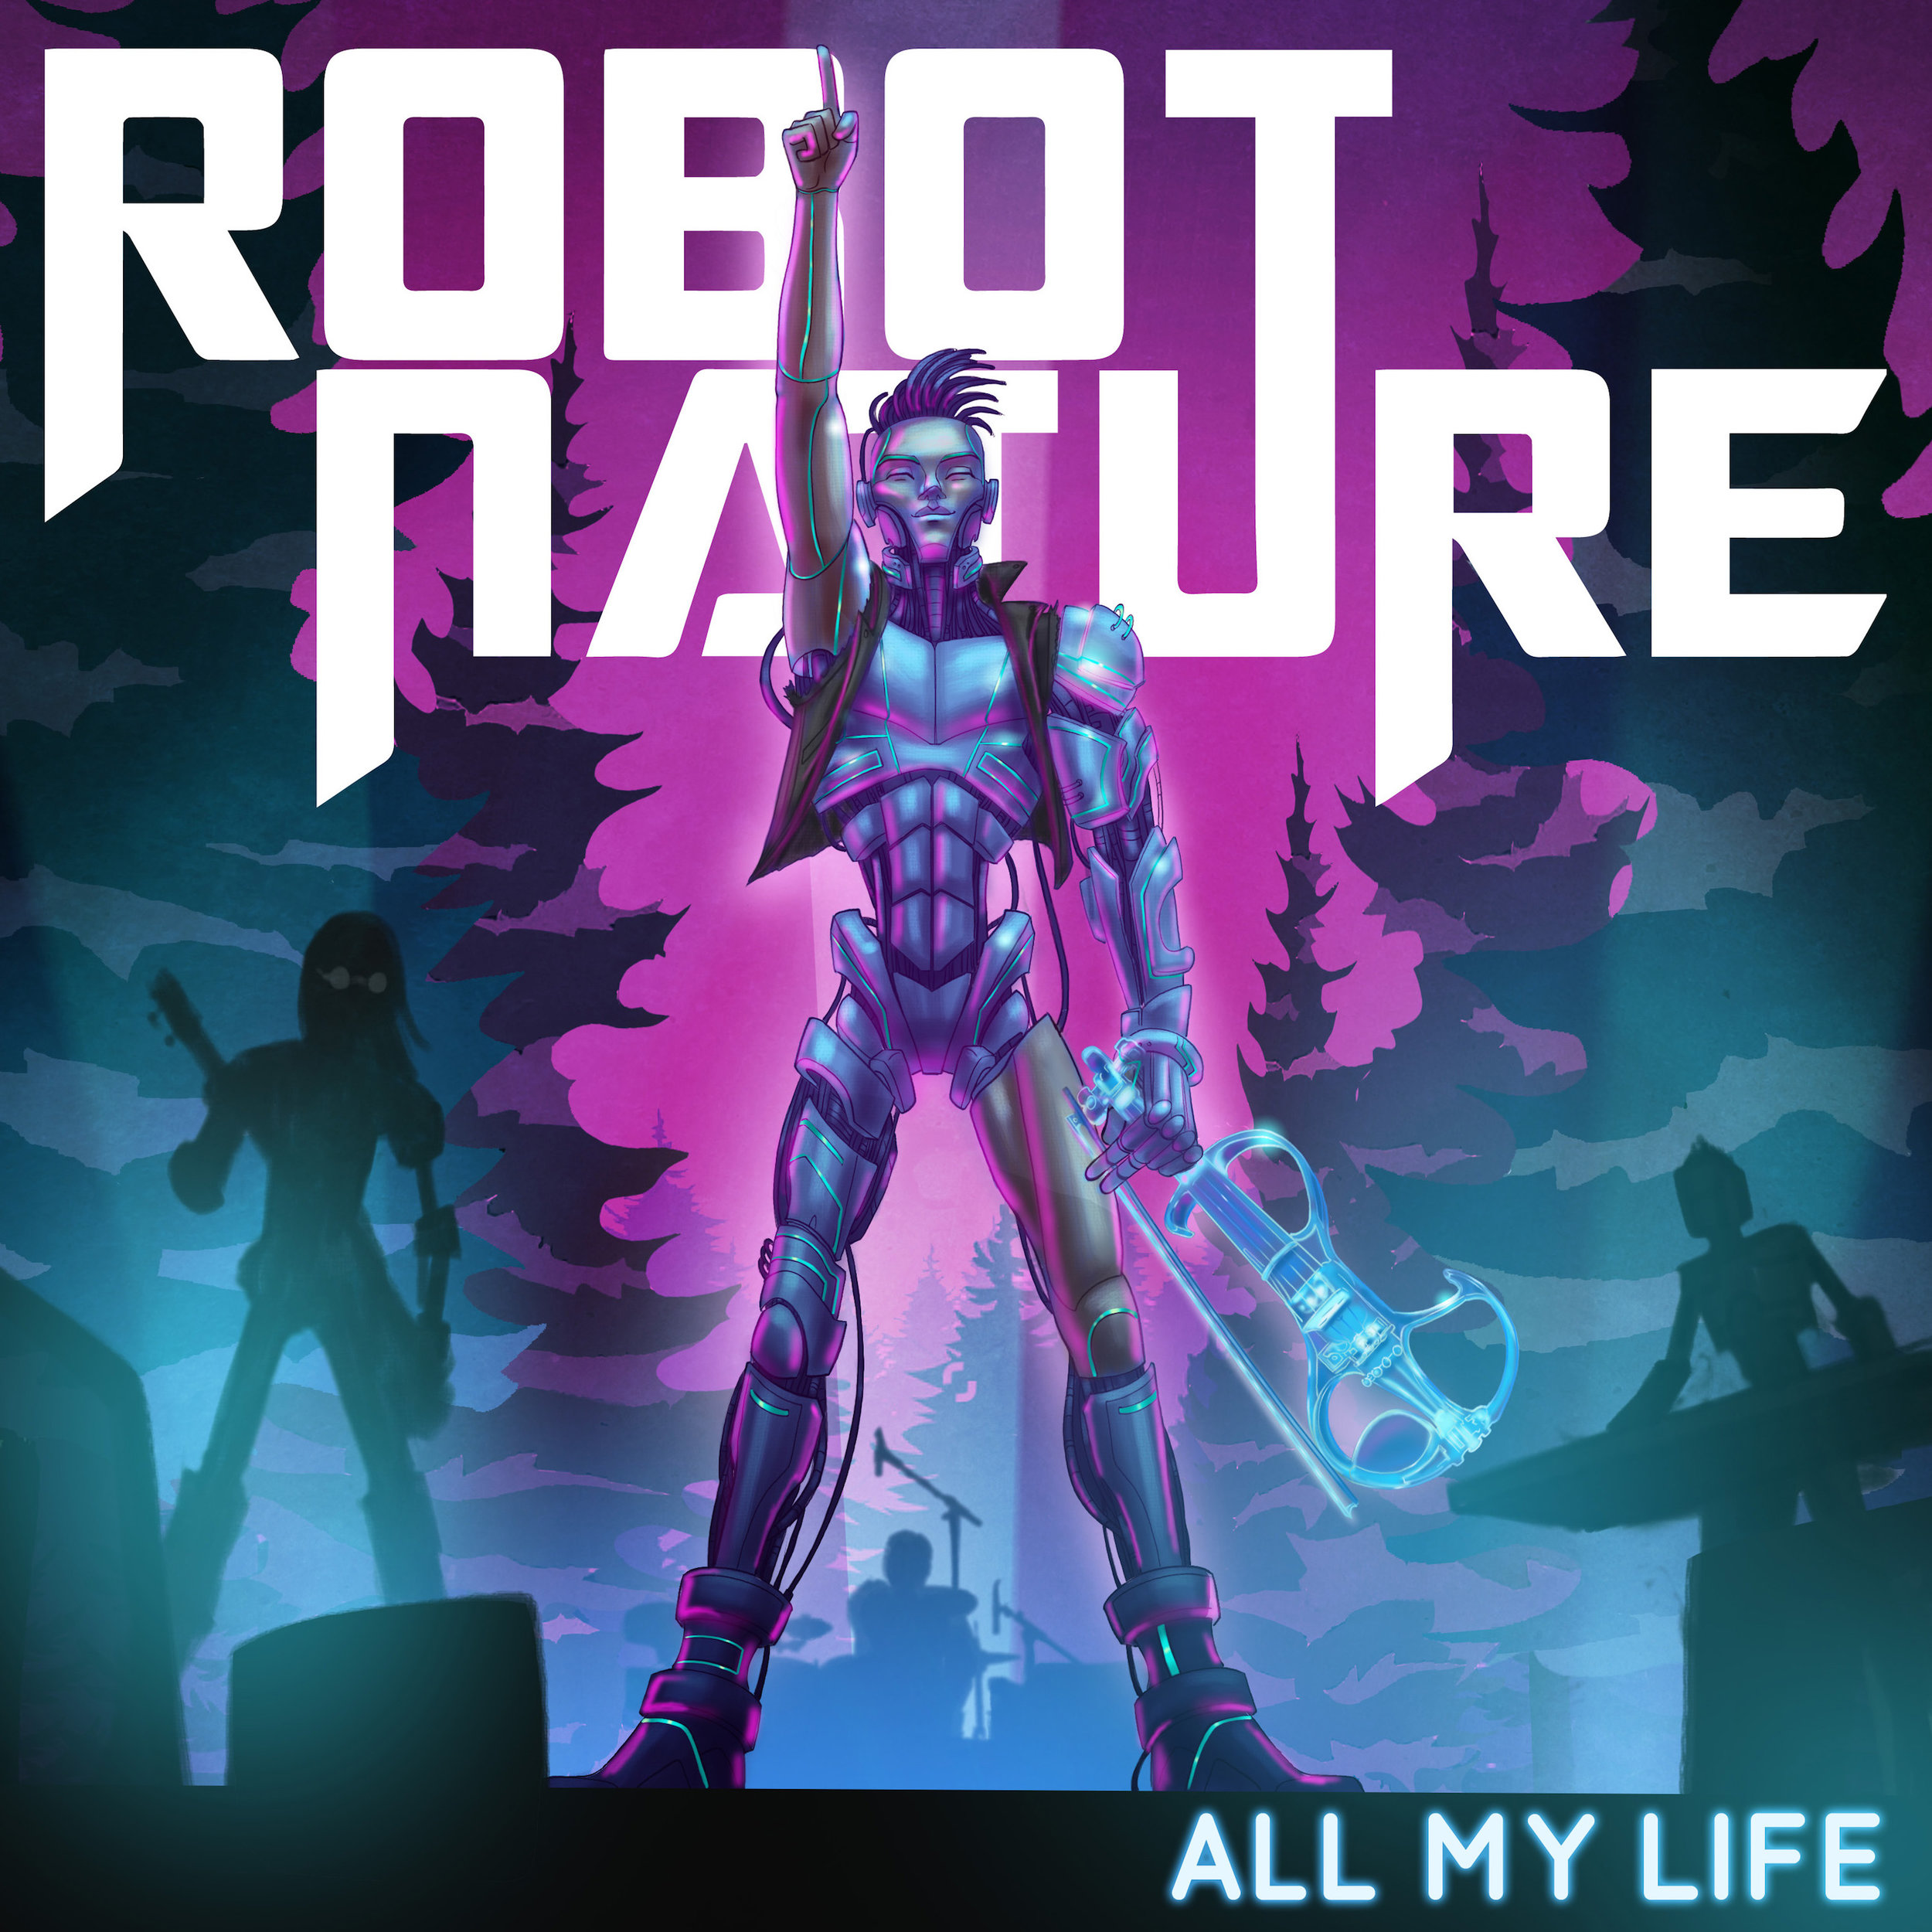 ALL MY LIFE - Los Angeles based group Robot Nature's first single release January 19th - Produced / Directed / Shot / Color Graded & Edited by SLH. The video was shot in the Mojave Desert and downtown LA.To purchase the music and fin out more about the Robots go to : https://www.robotnature.com